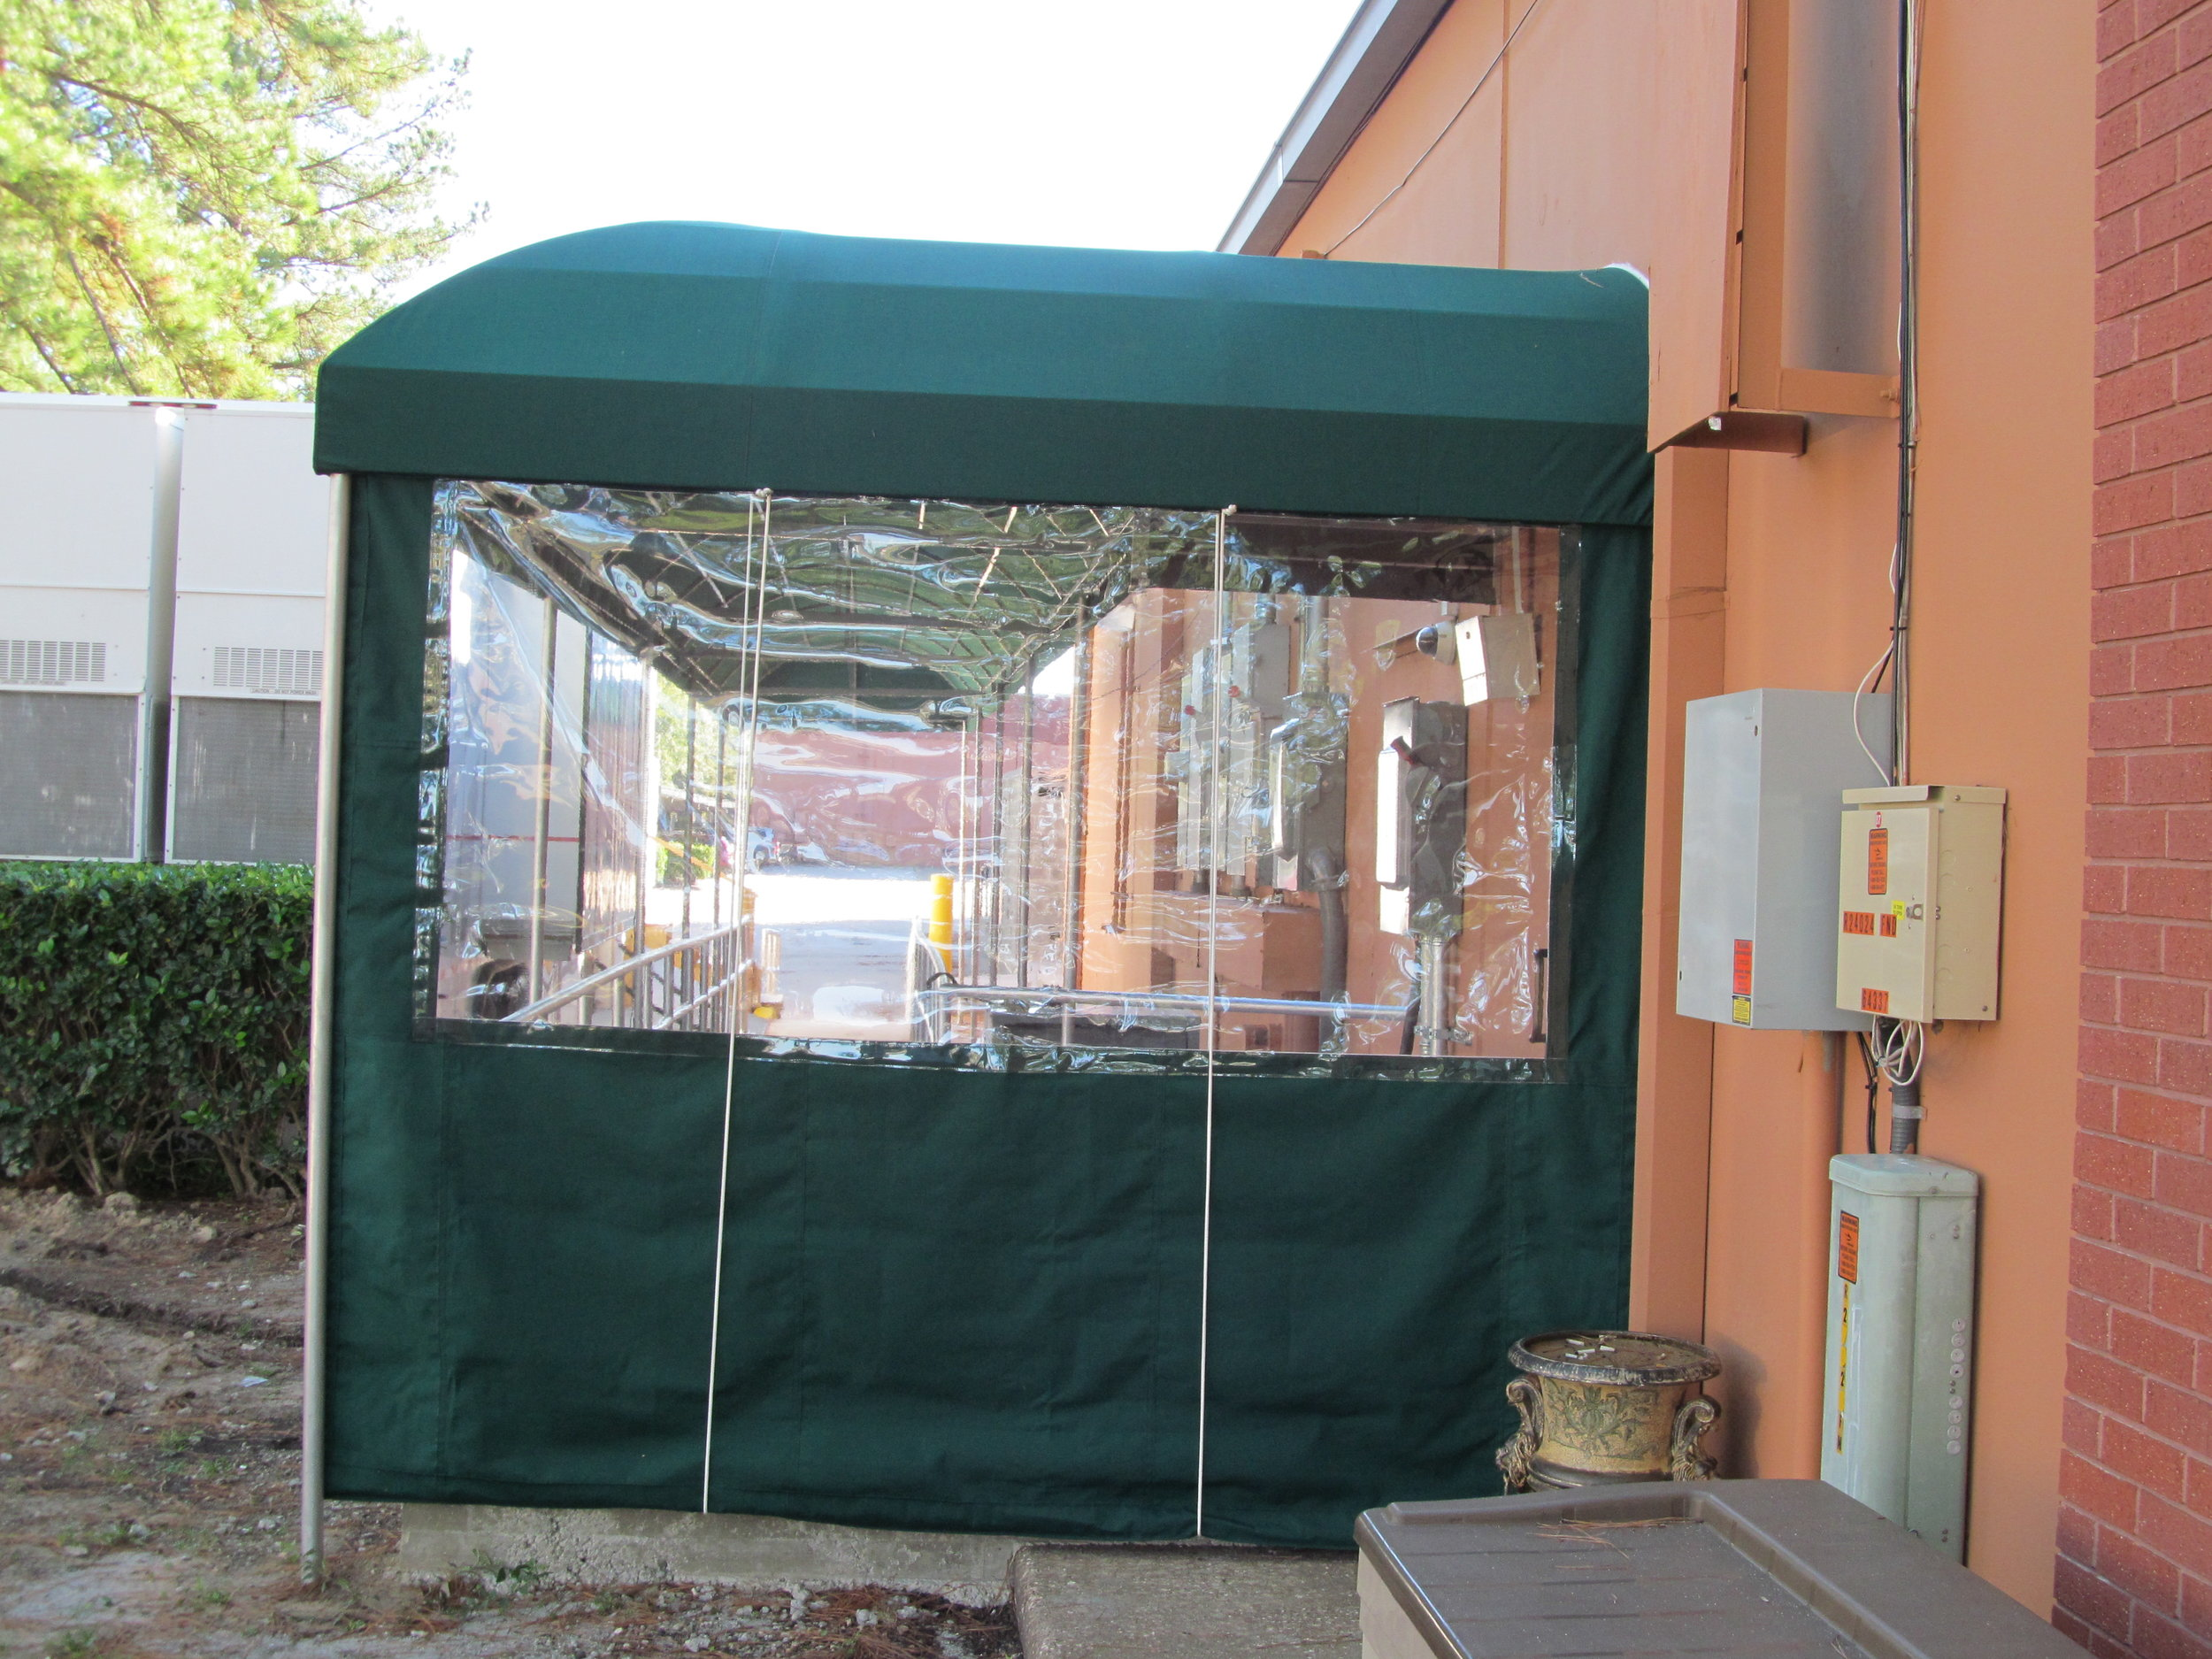 IMG_0267 Canopy Curtain Roll Up. Wind guard..JPG